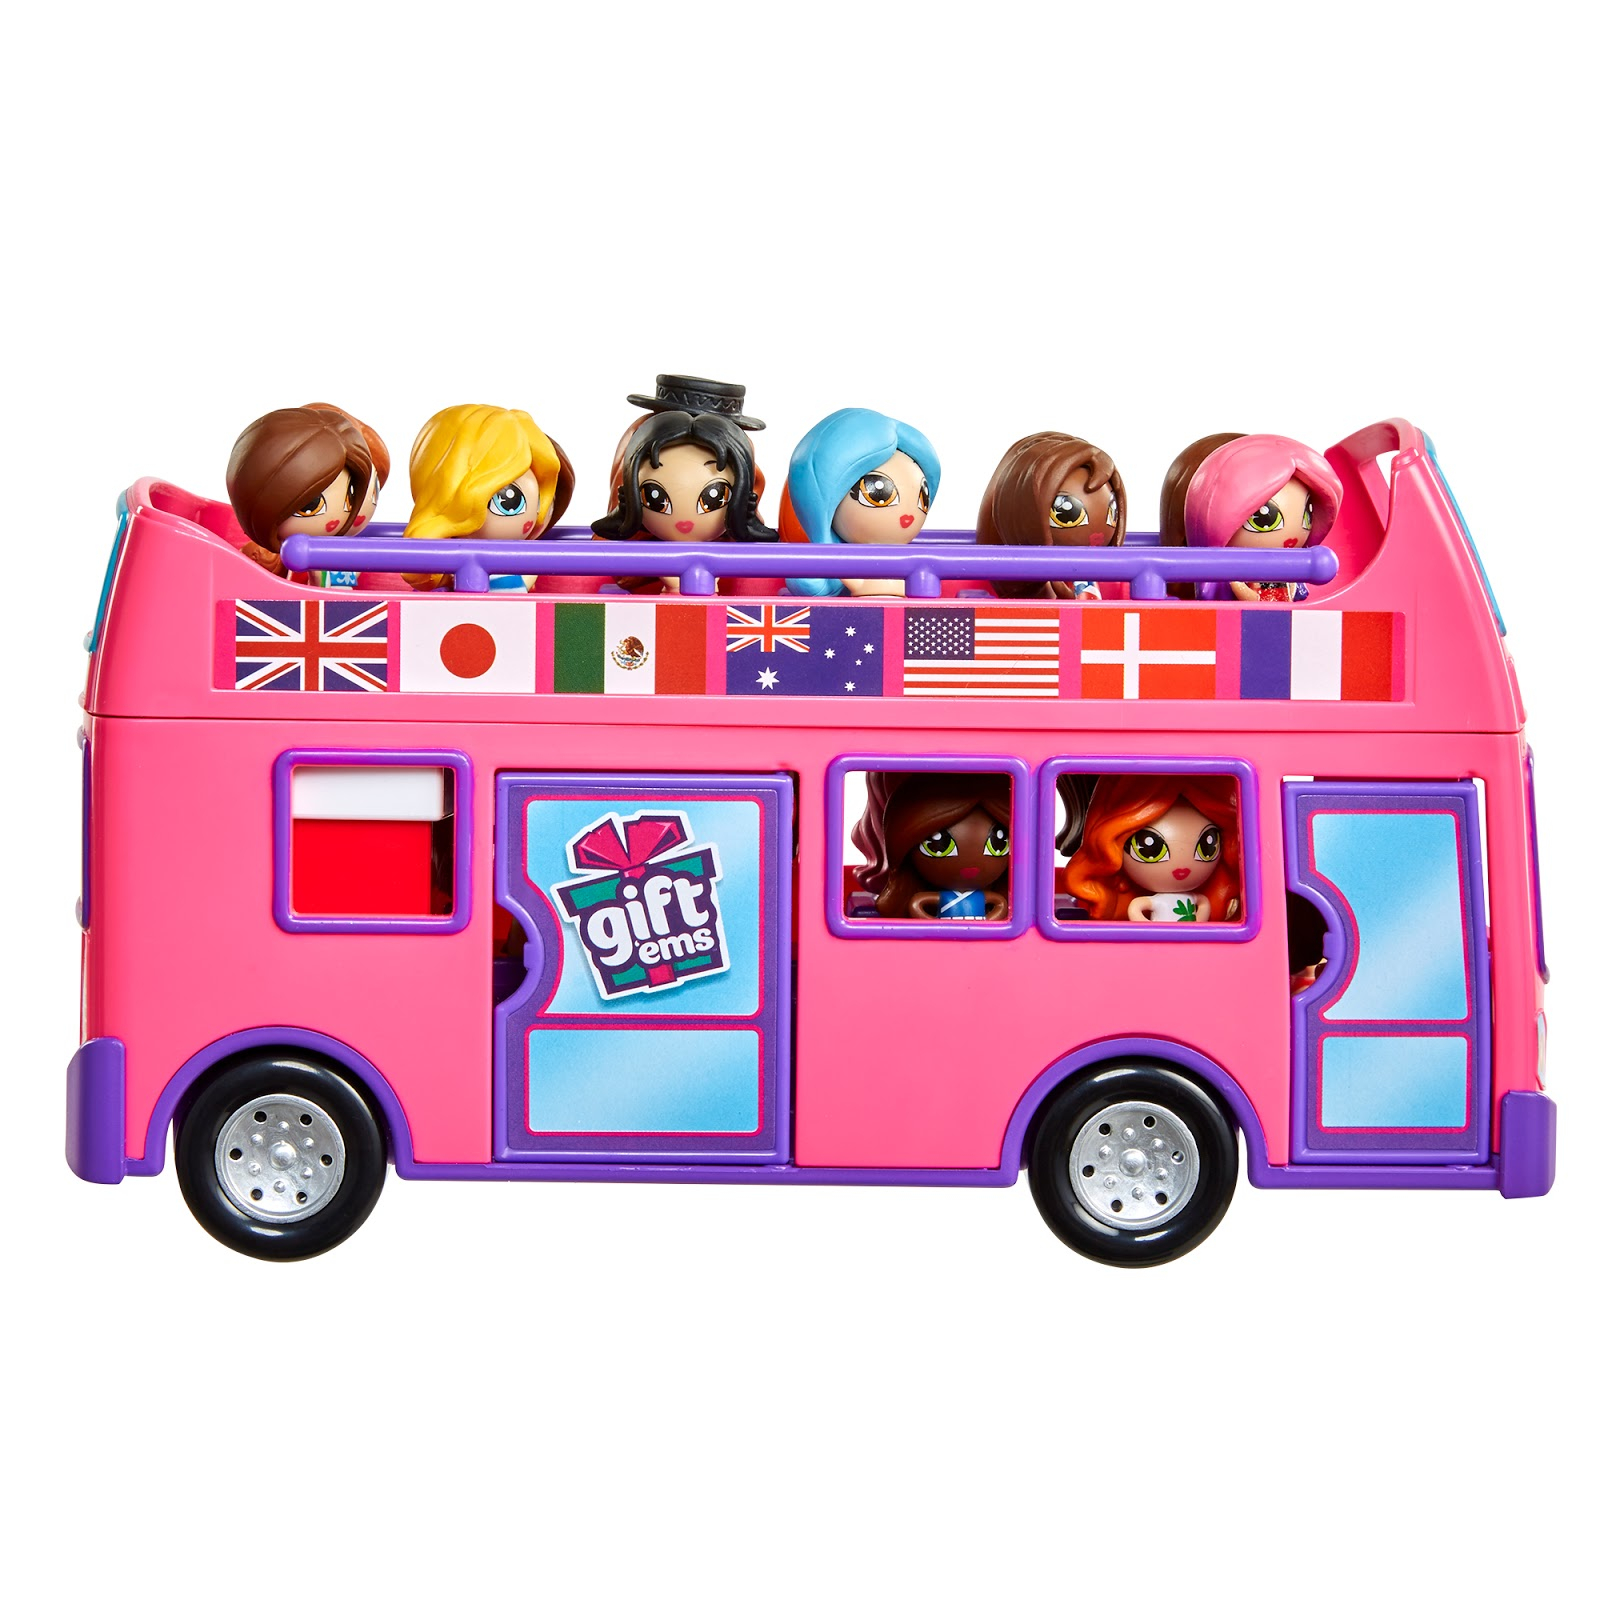 Bus Toys For Girls : A rup life gift 'ems™ by jakks the hottest new toy for